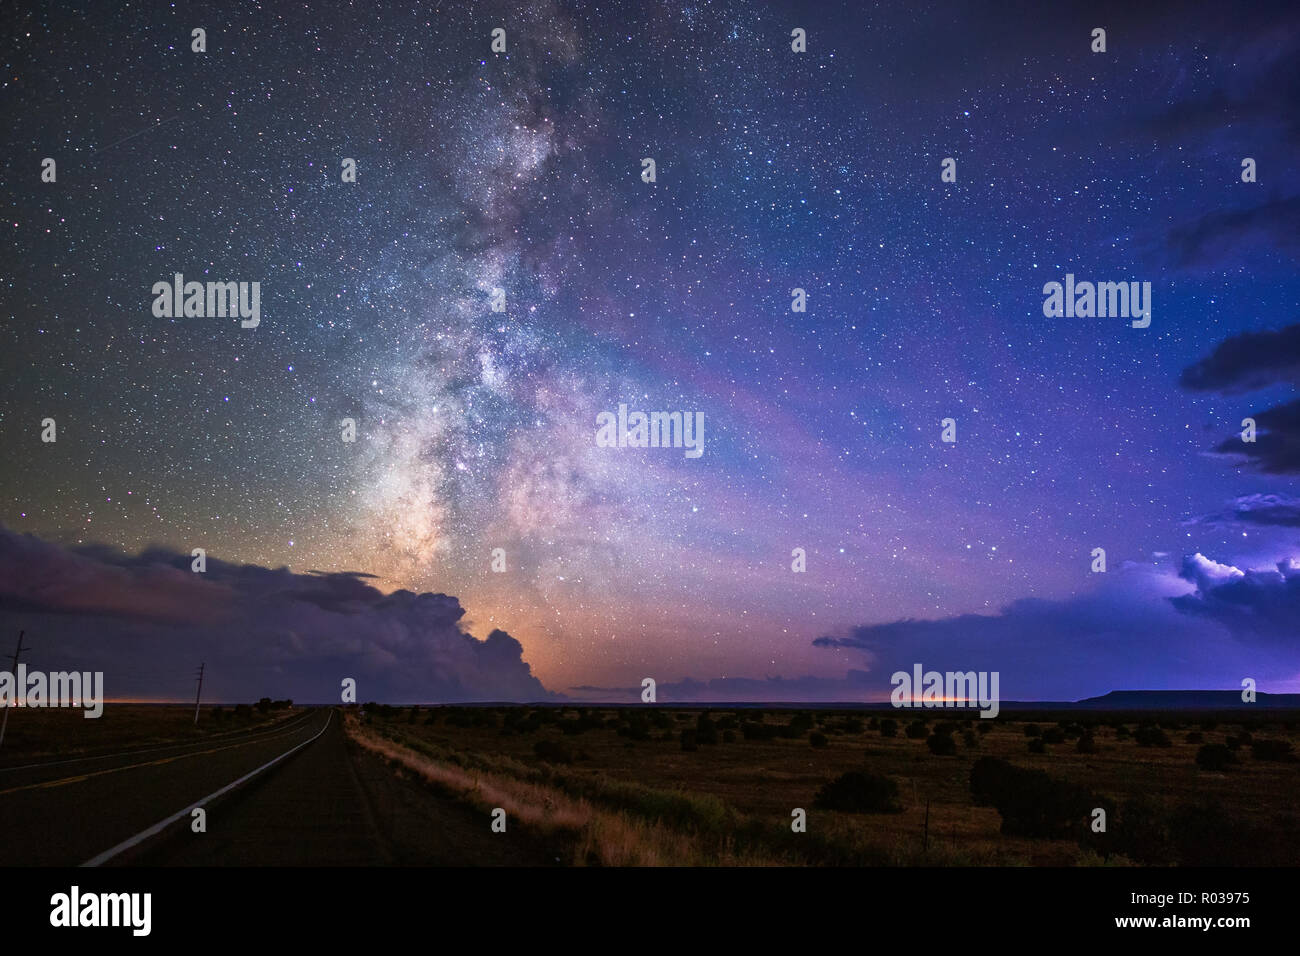 The Milky Way galaxy between a pair of storms in the night sky near Winslow, Arizona. - Stock Image